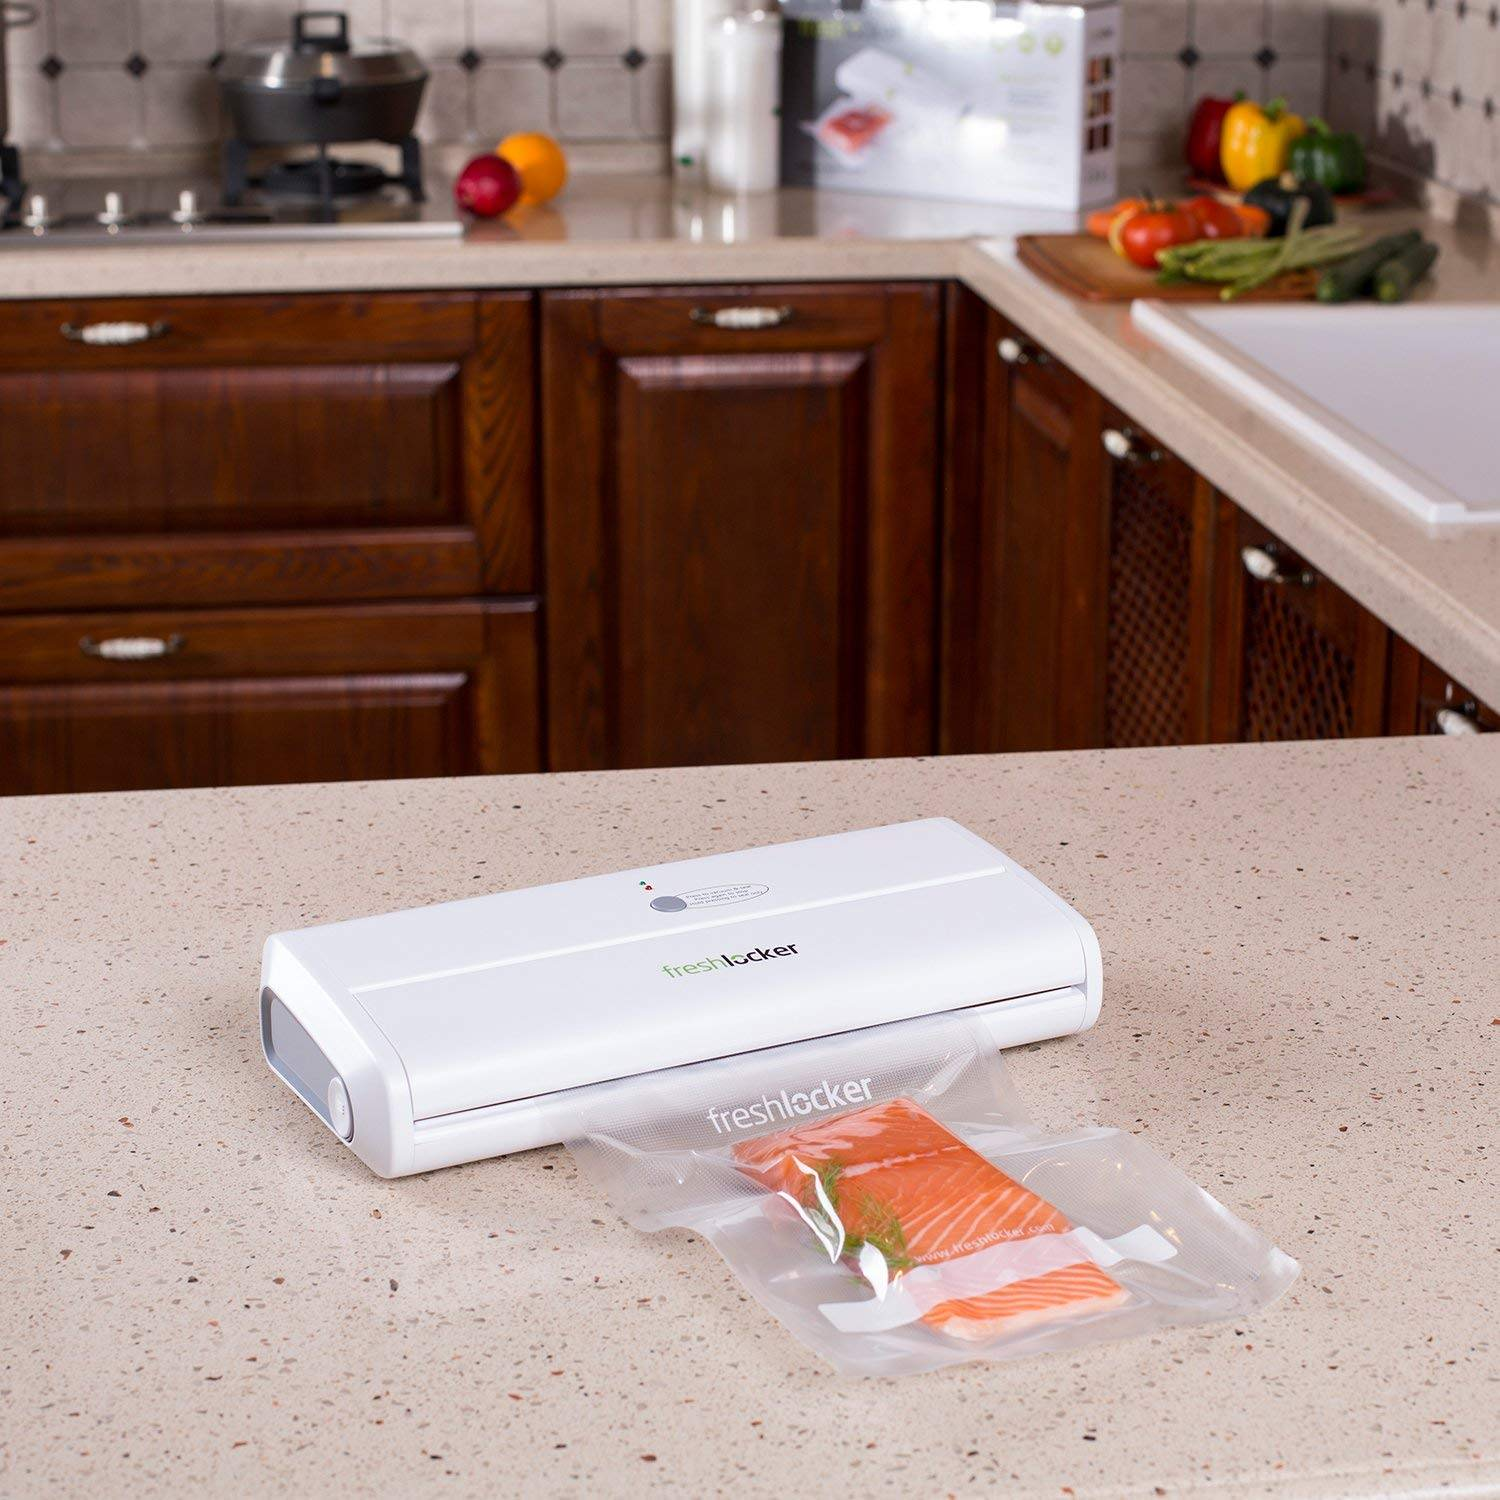 FRESHLOCKER VS90 VACUUM SEALER MACHINE,1 BUTTON AUTOMATIC VACUUM SEALING SYSTEM WITH STARTER PACK OF SAVER ROLL AND BAGS